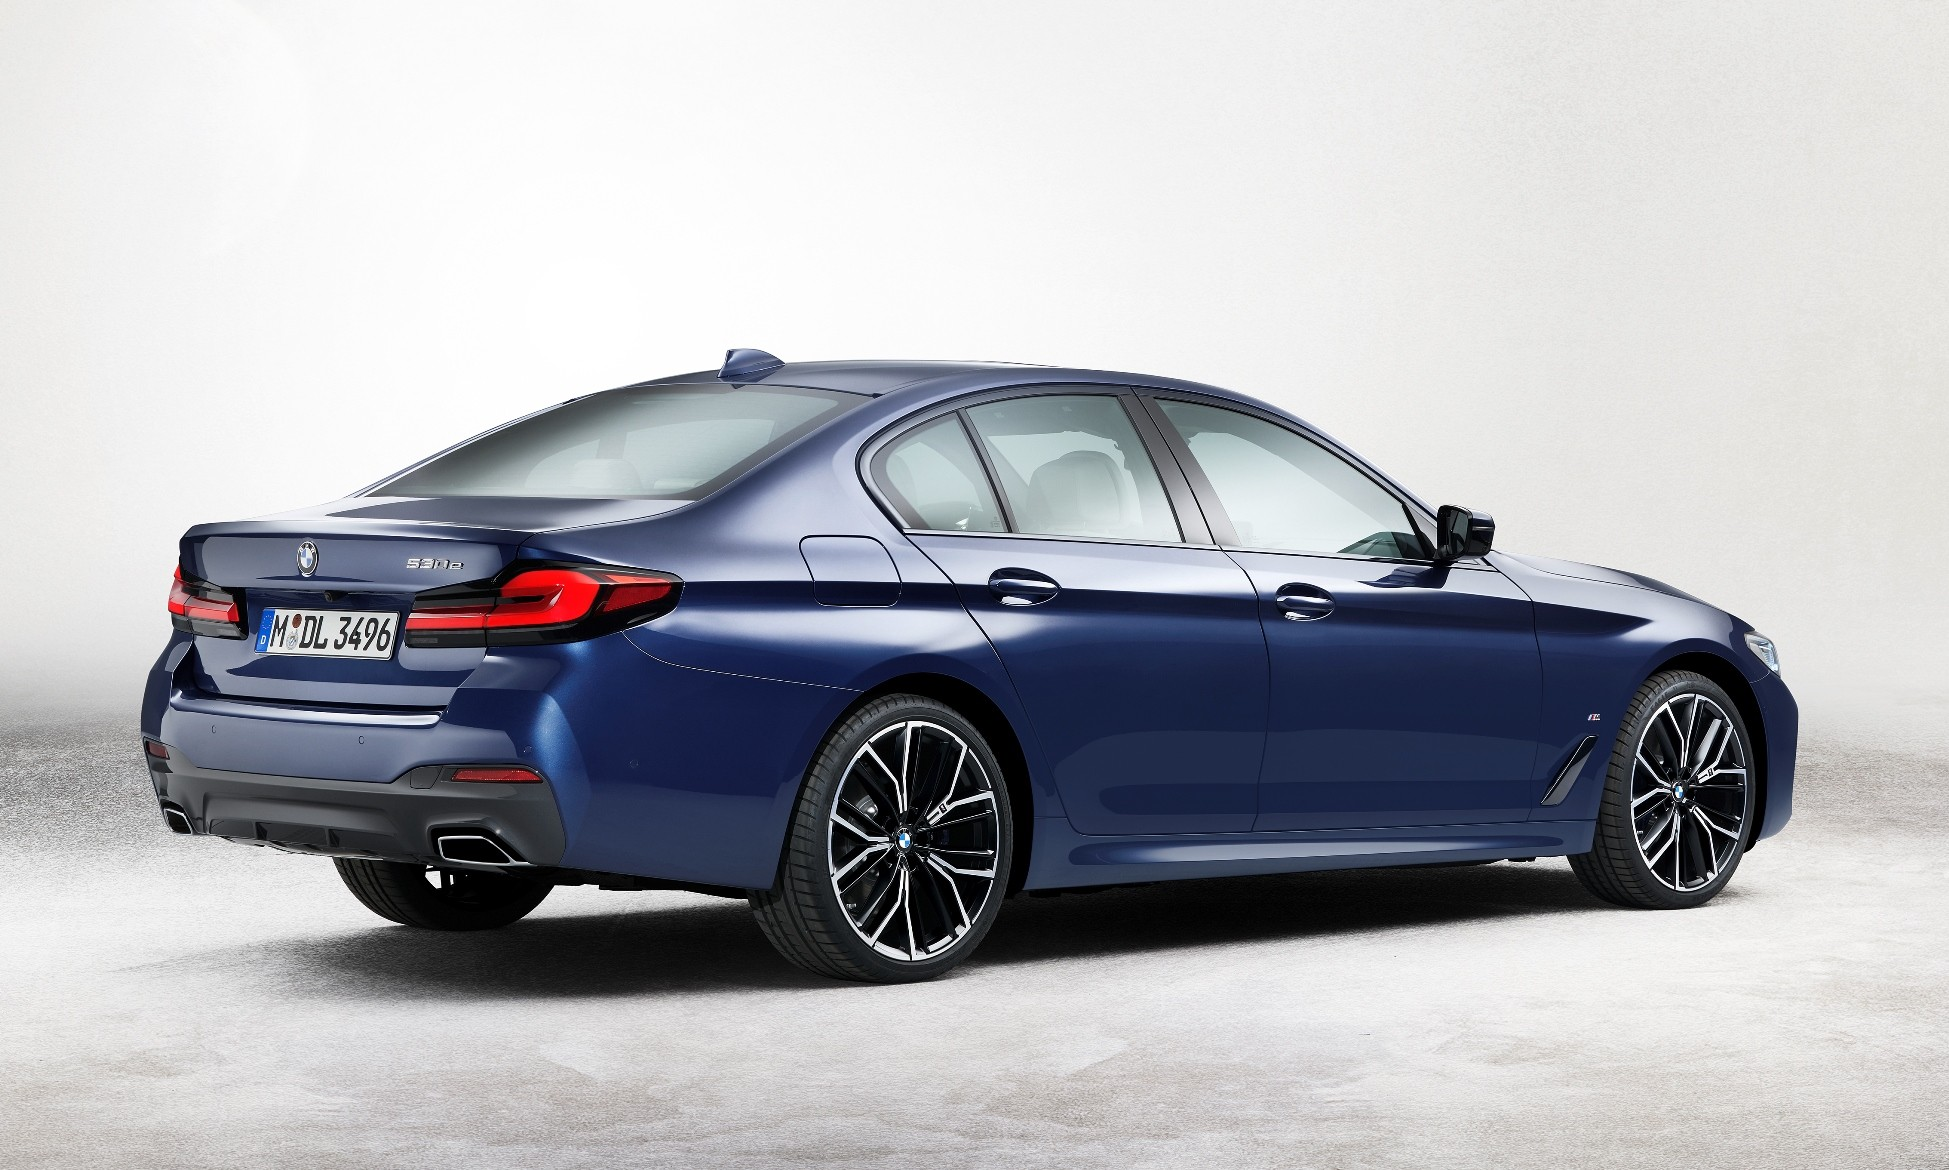 Facelifted BMW 5 Series rear